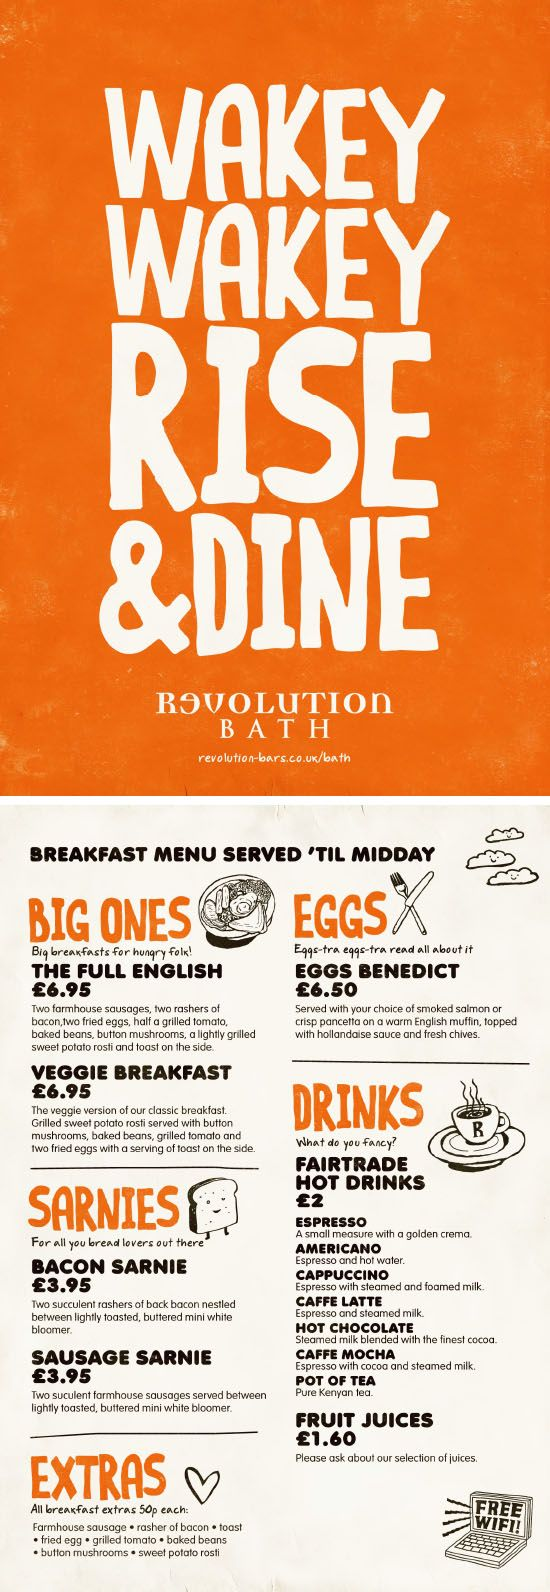 Breakfast Menu Colourful Graphic Design Menu By Www Diagramdesign Co Uk Breakfast Menu Design Menu Design Inspiration Menu Design Layout